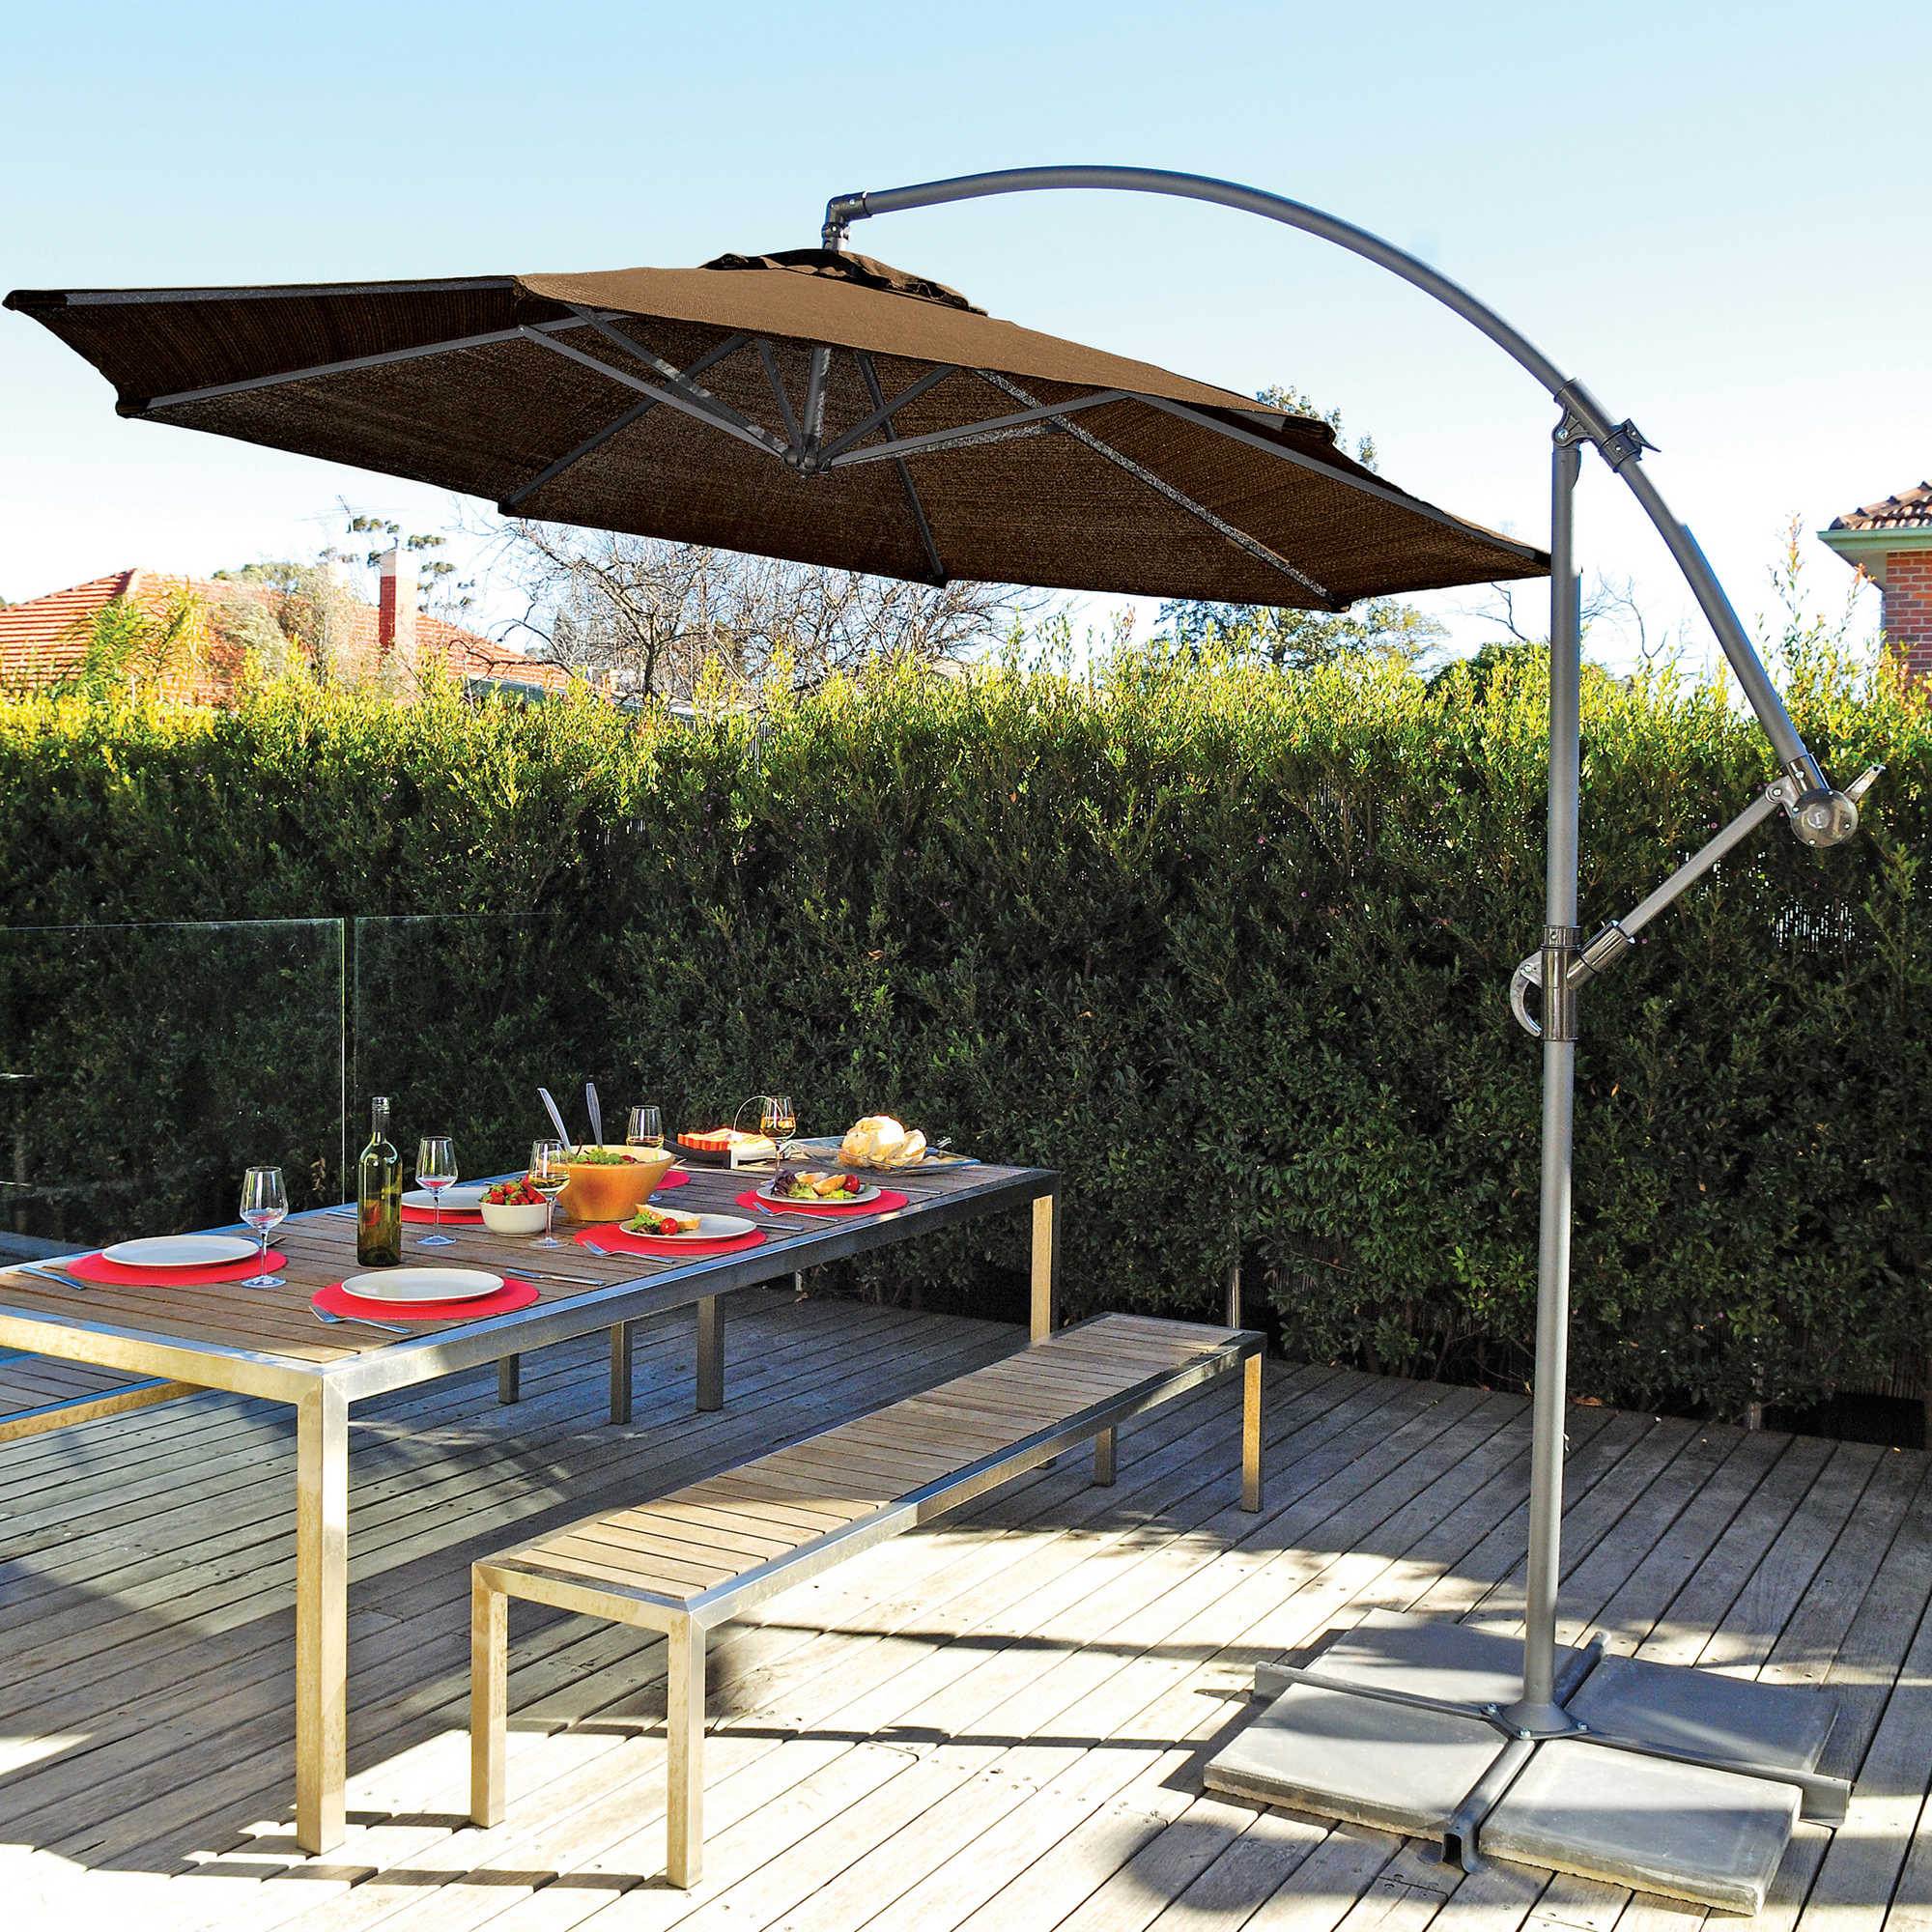 Best ideas about Cantilever Patio Umbrella . Save or Pin 10 Foot Round Cantilever Umbrella Patio Outdoor Dining Now.